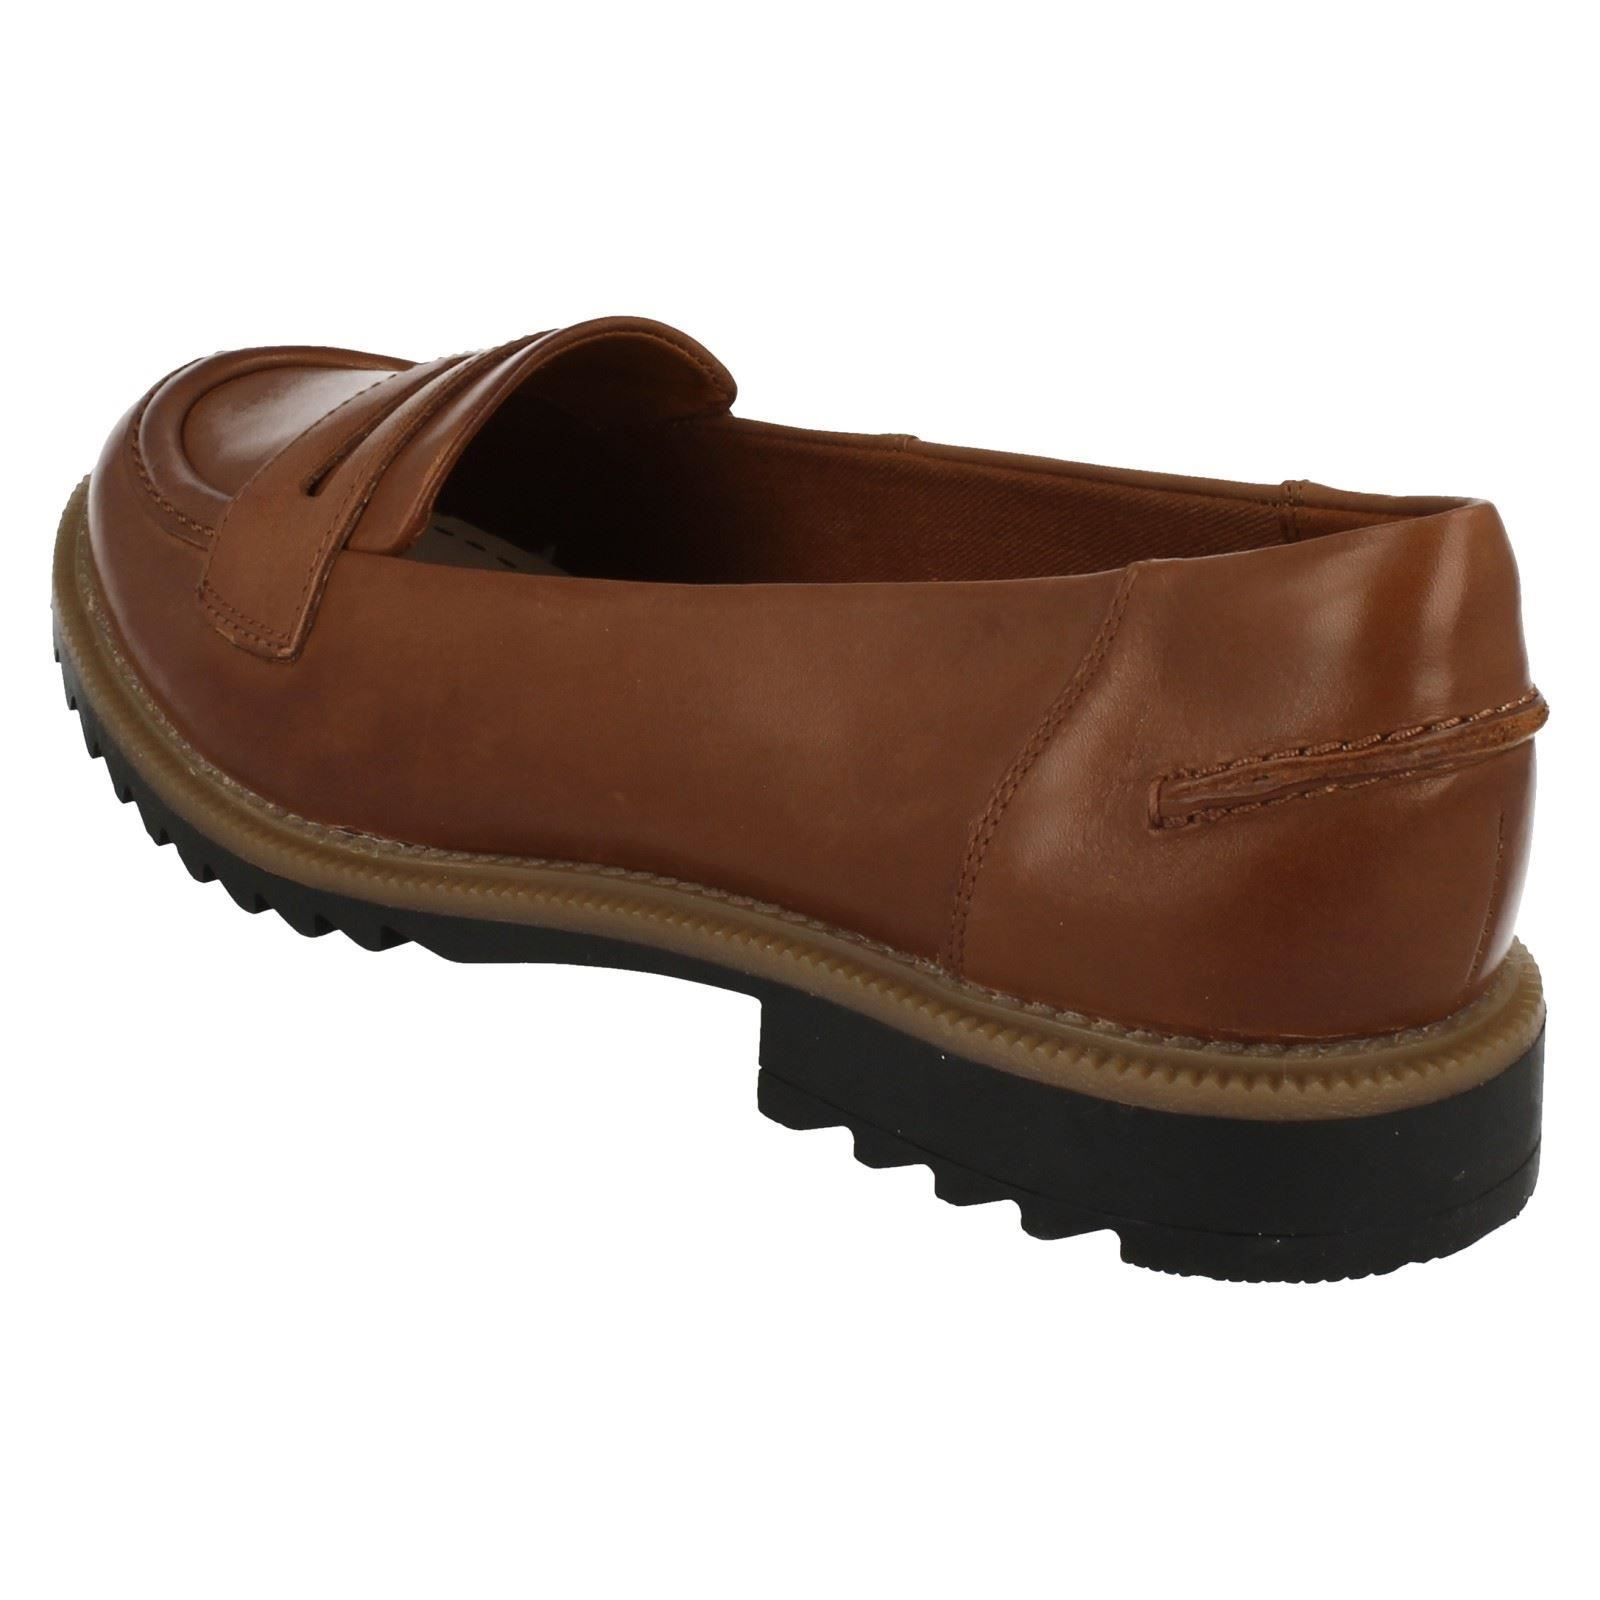 Ladies Clarks Shoes For Bunions